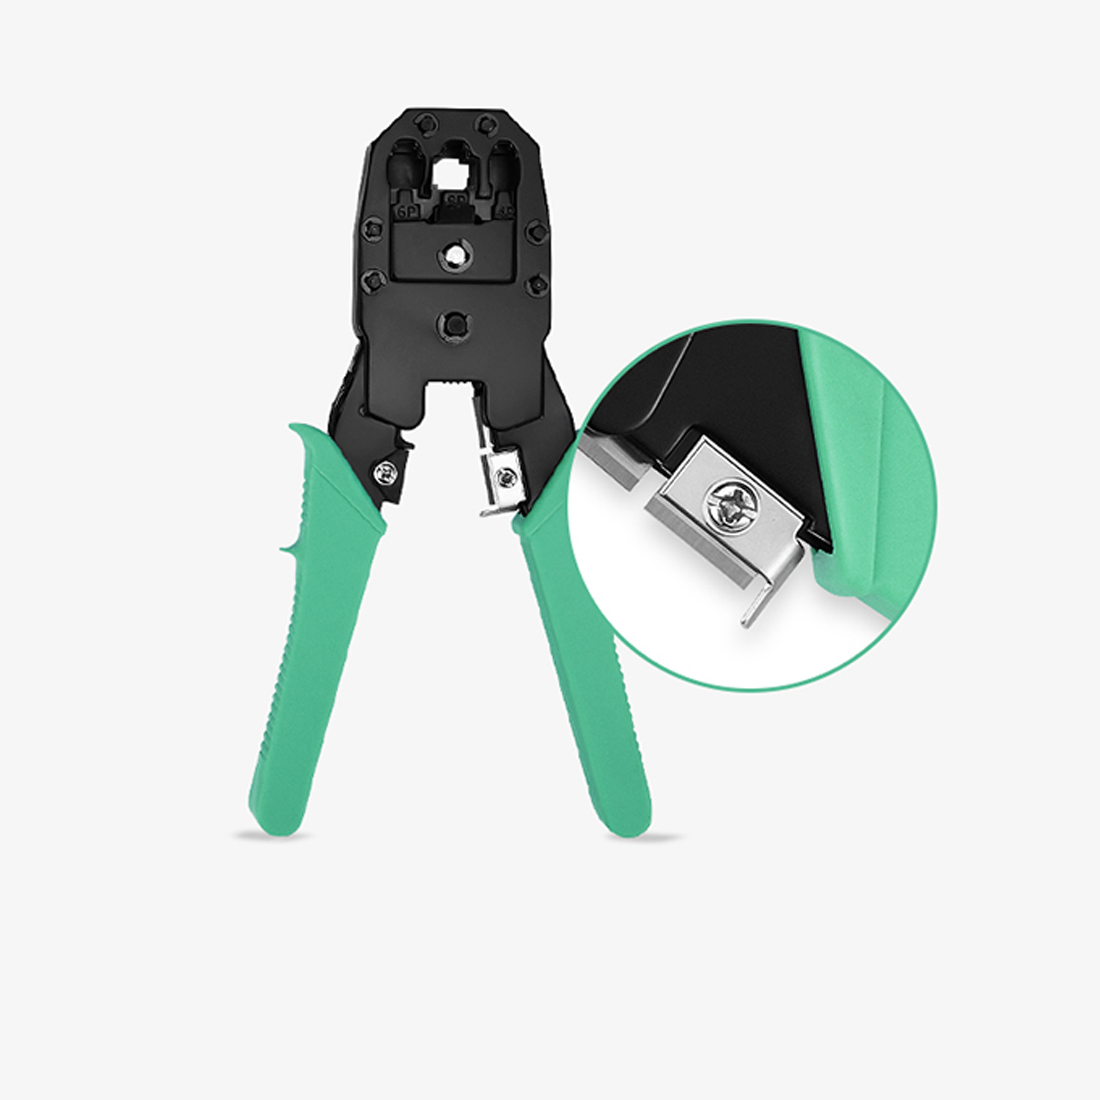 1pcs New Networking Multi Tool RJ45 RJ11 Wire Cable Crimper Crimp PC Network Hand Tools High